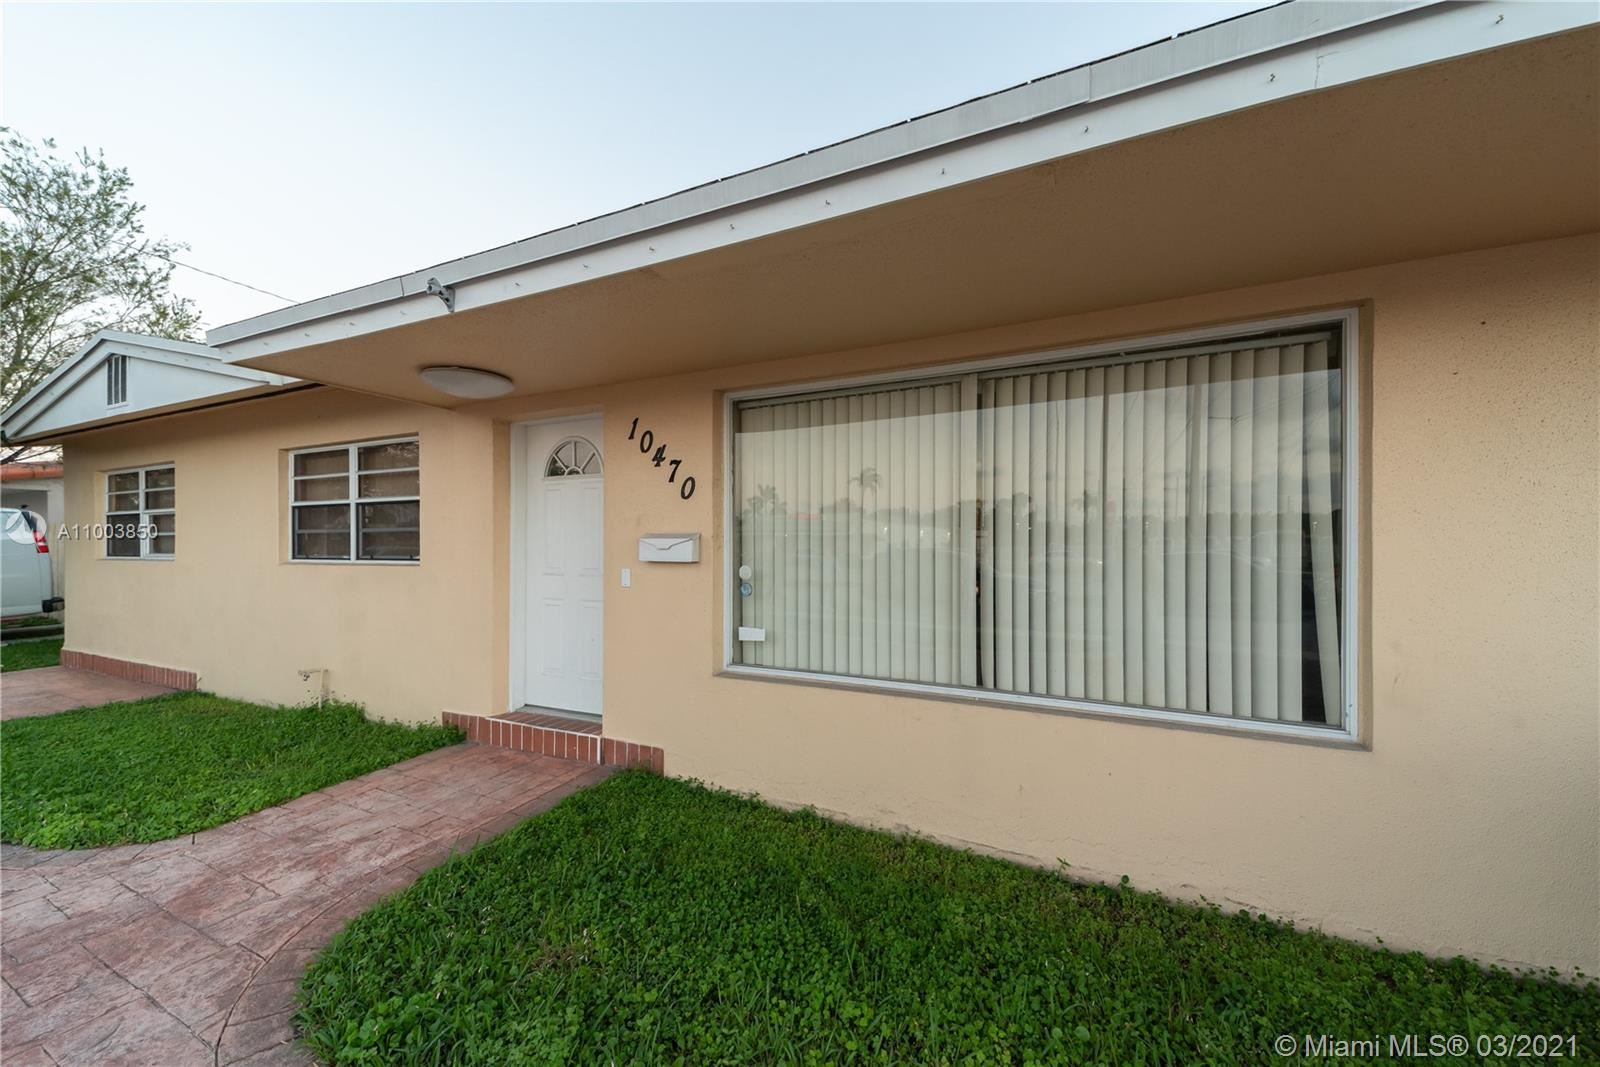 10470 SW 40th St, Miami, FL 33165 - #: A11003850